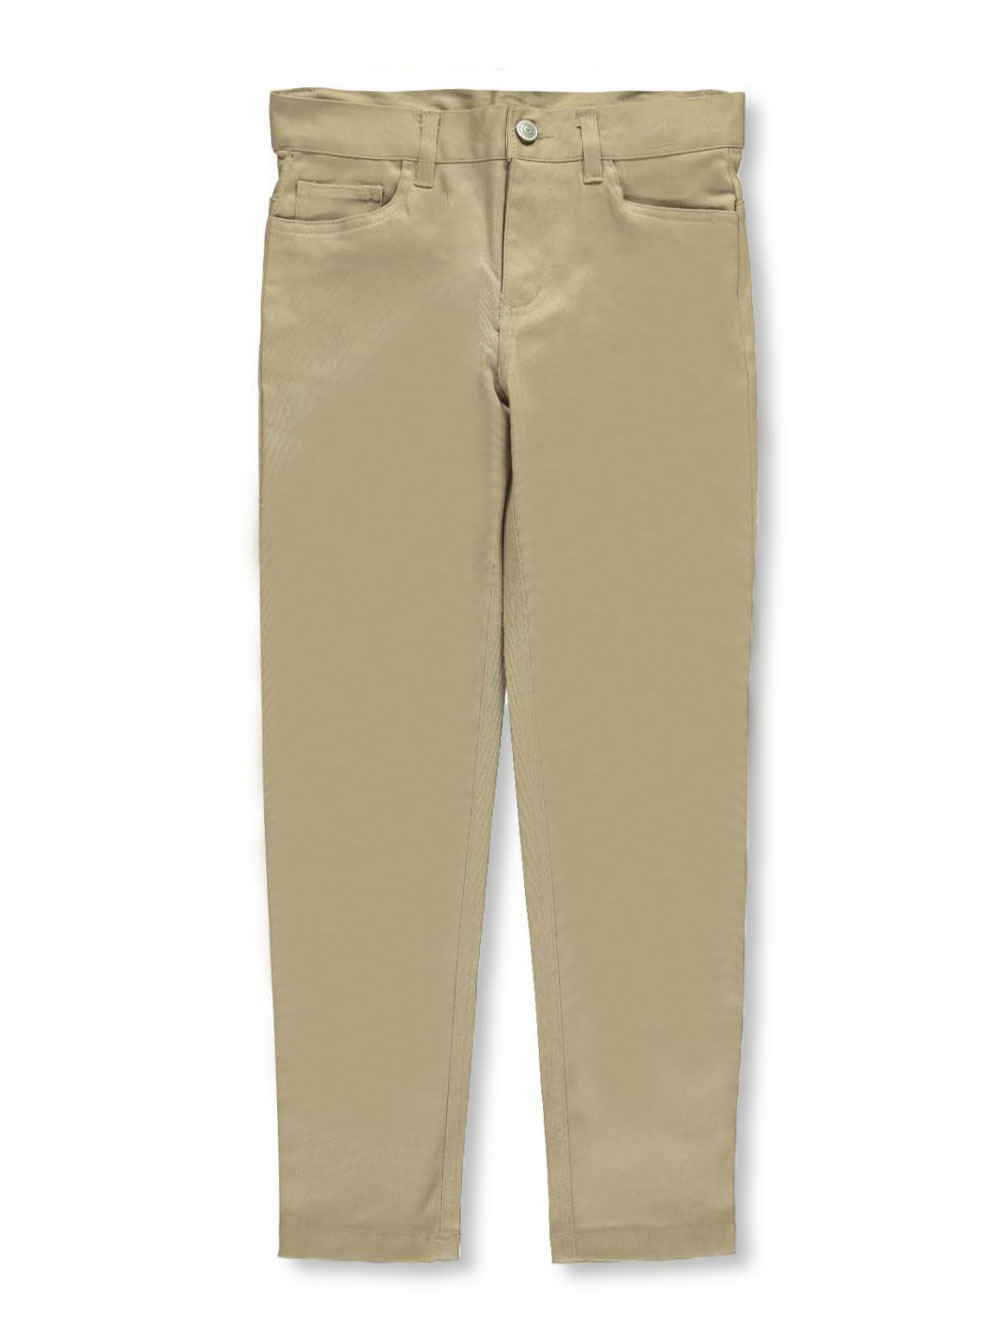 Galaxy Big Girls' School Uniform Pencil Pants (Sizes 7 - 16) - khaki, 14